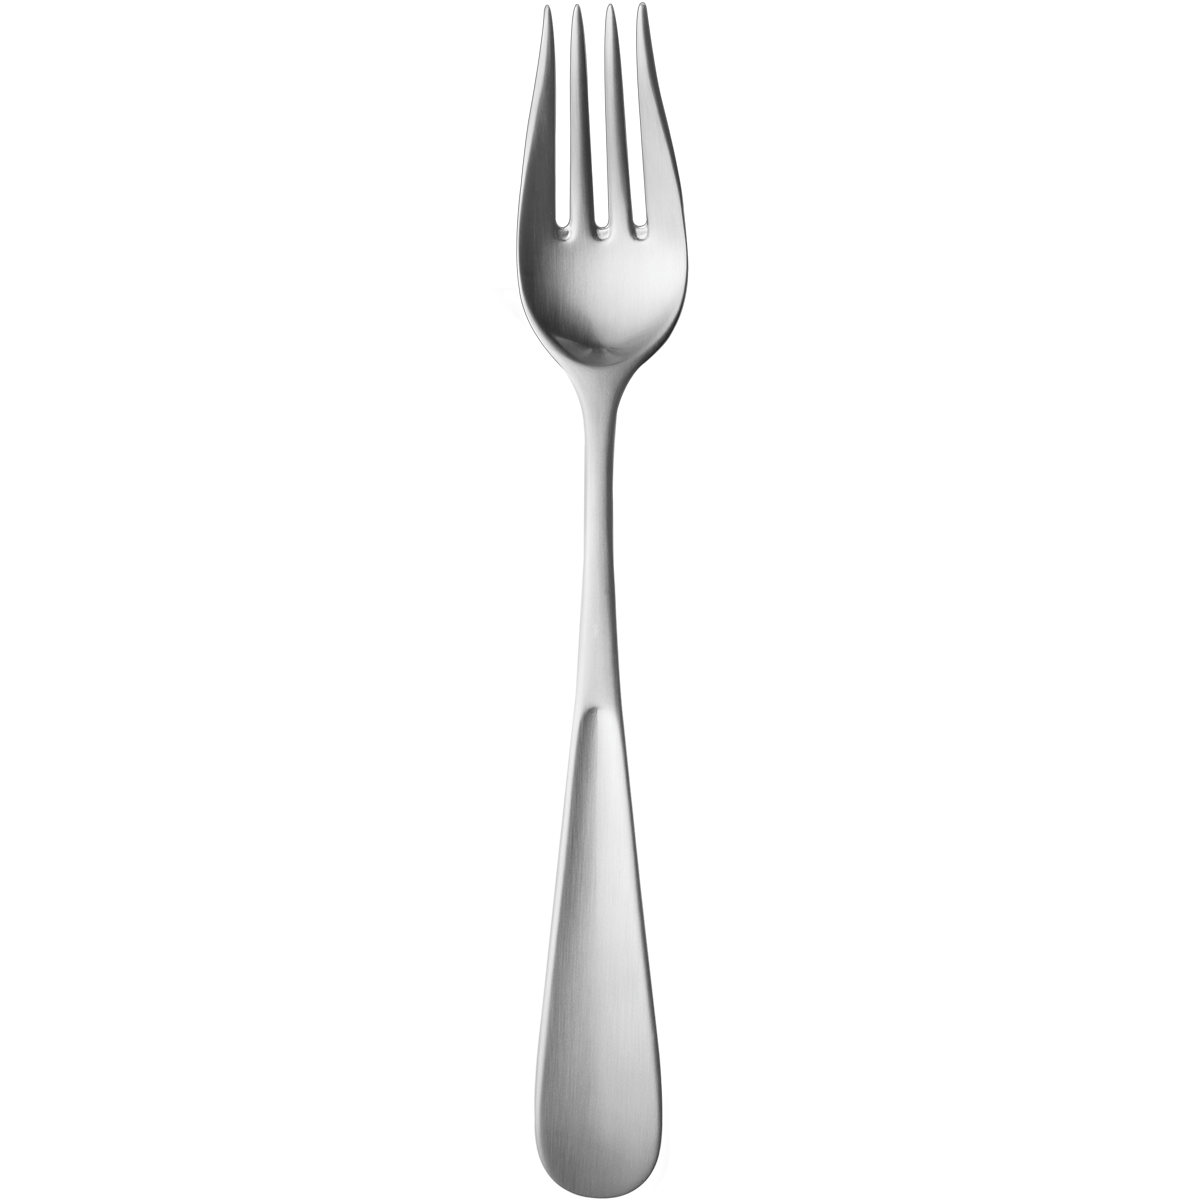 Forks images free fork picture download clipart